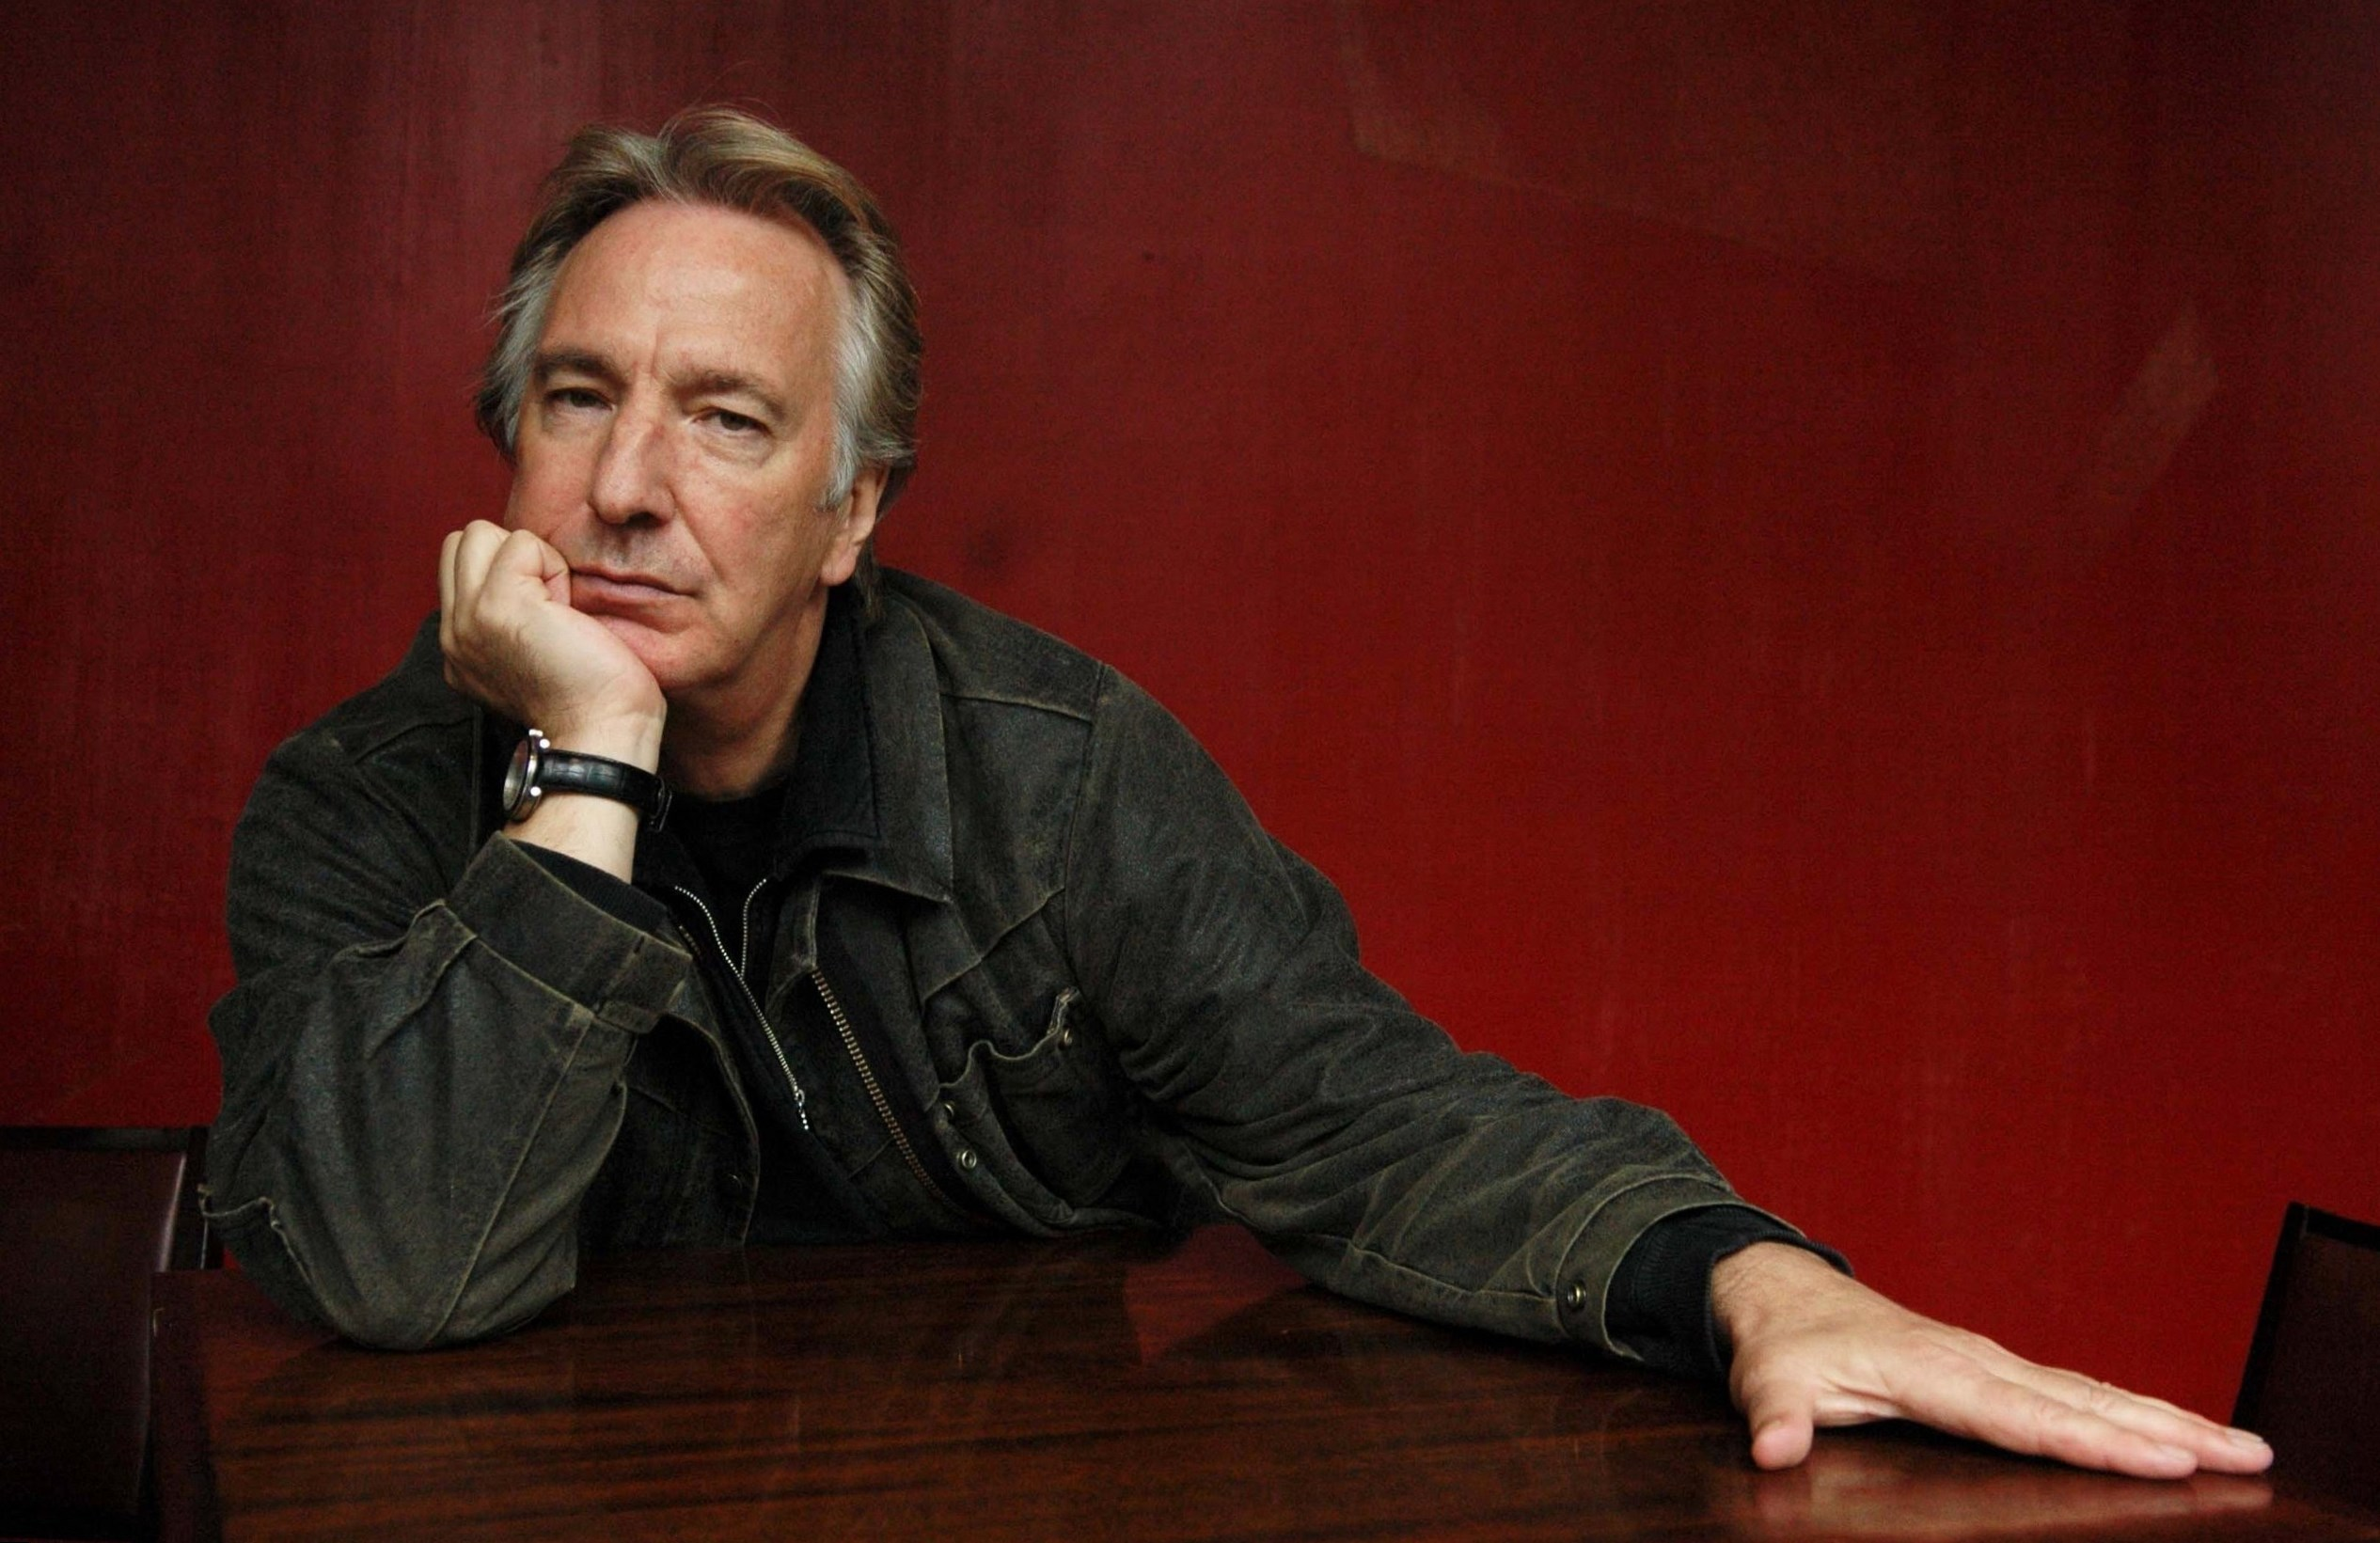 alan rickman weight height and age body measurements